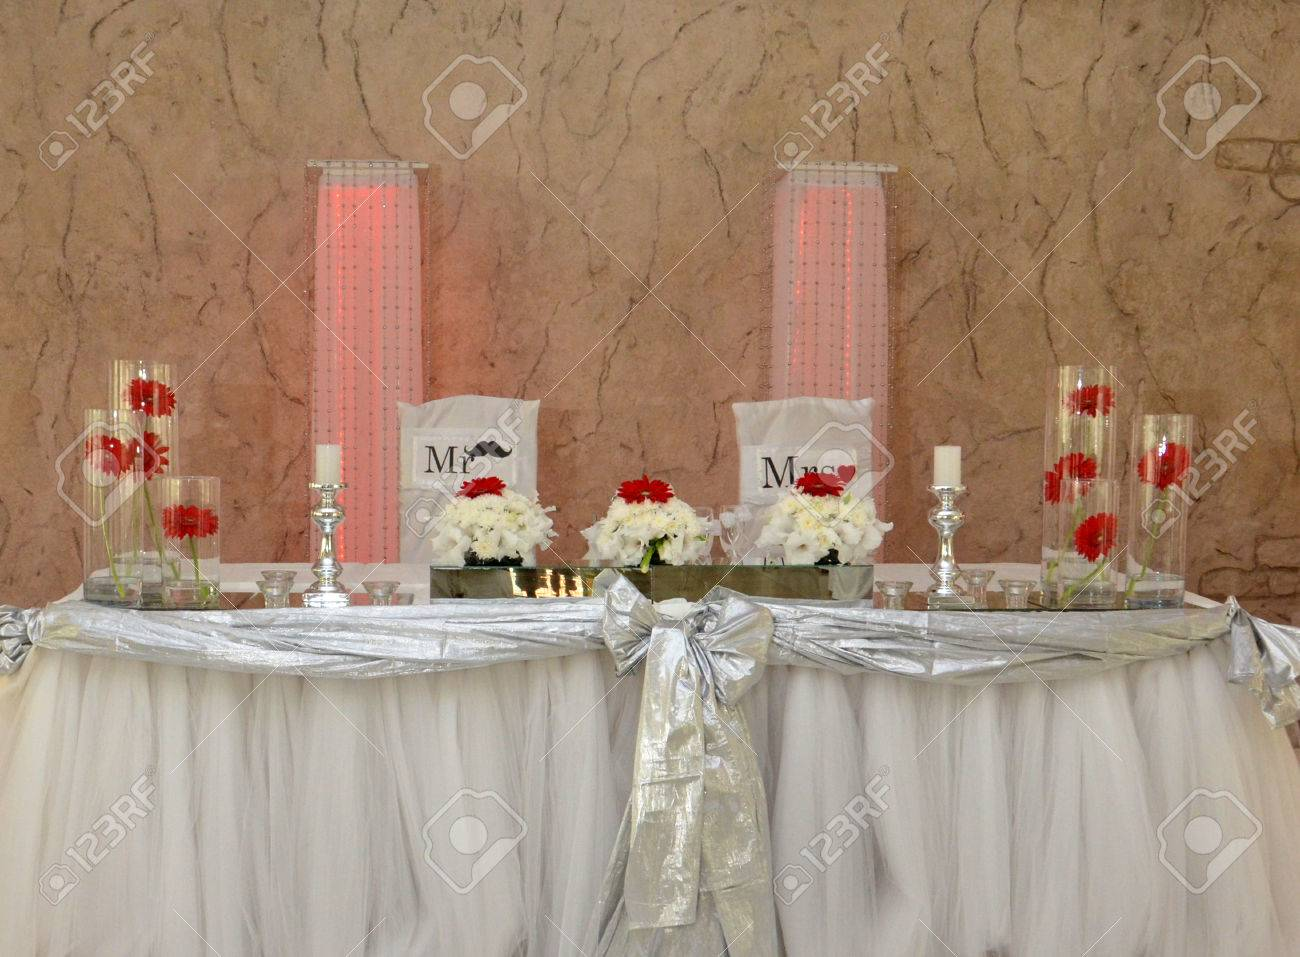 Bride Groom Table Decoration Bride And Groom Table Decoration Stock Photo Picture And Royalty